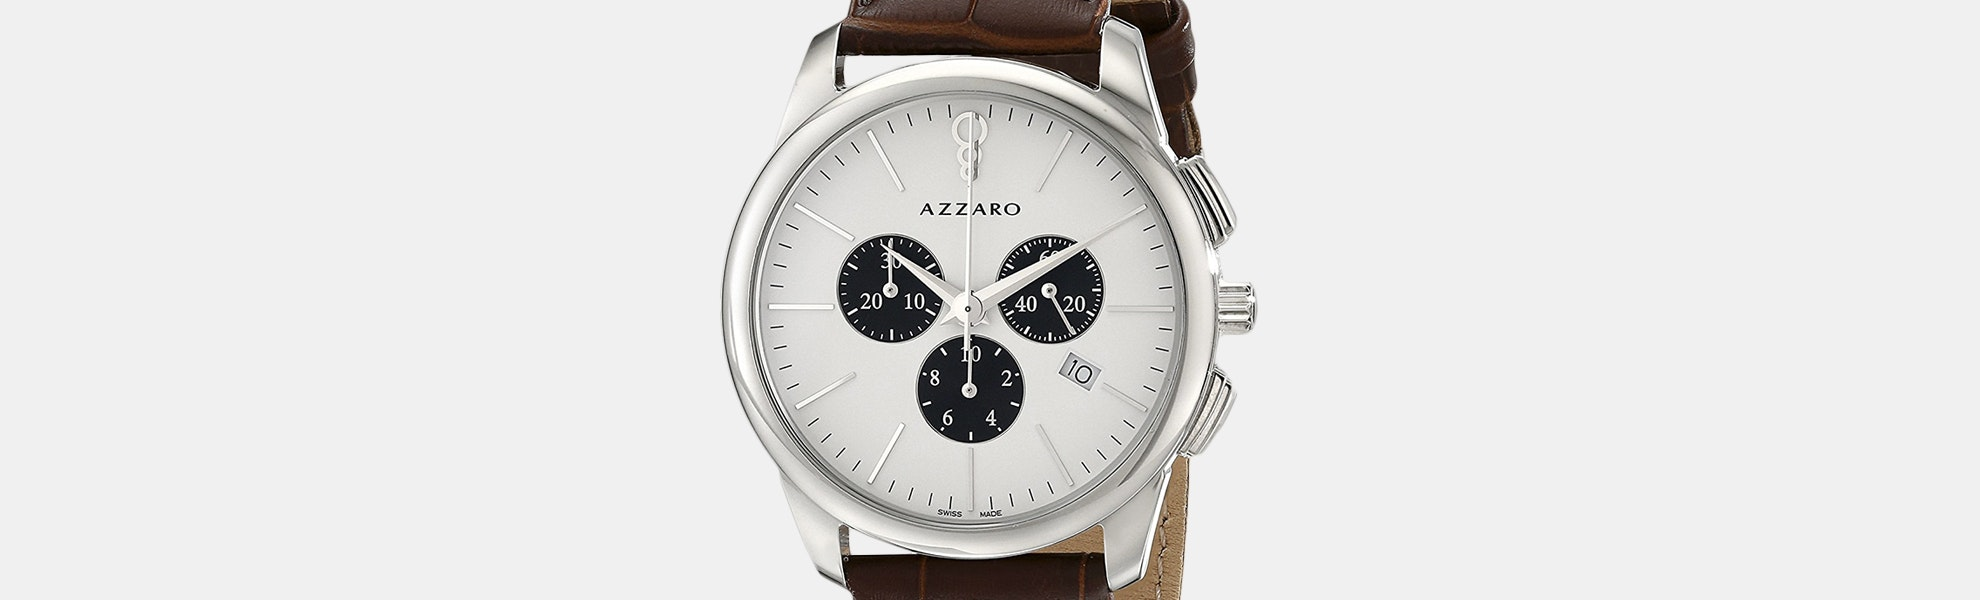 Azzaro Legend Chronograph Quartz Watch